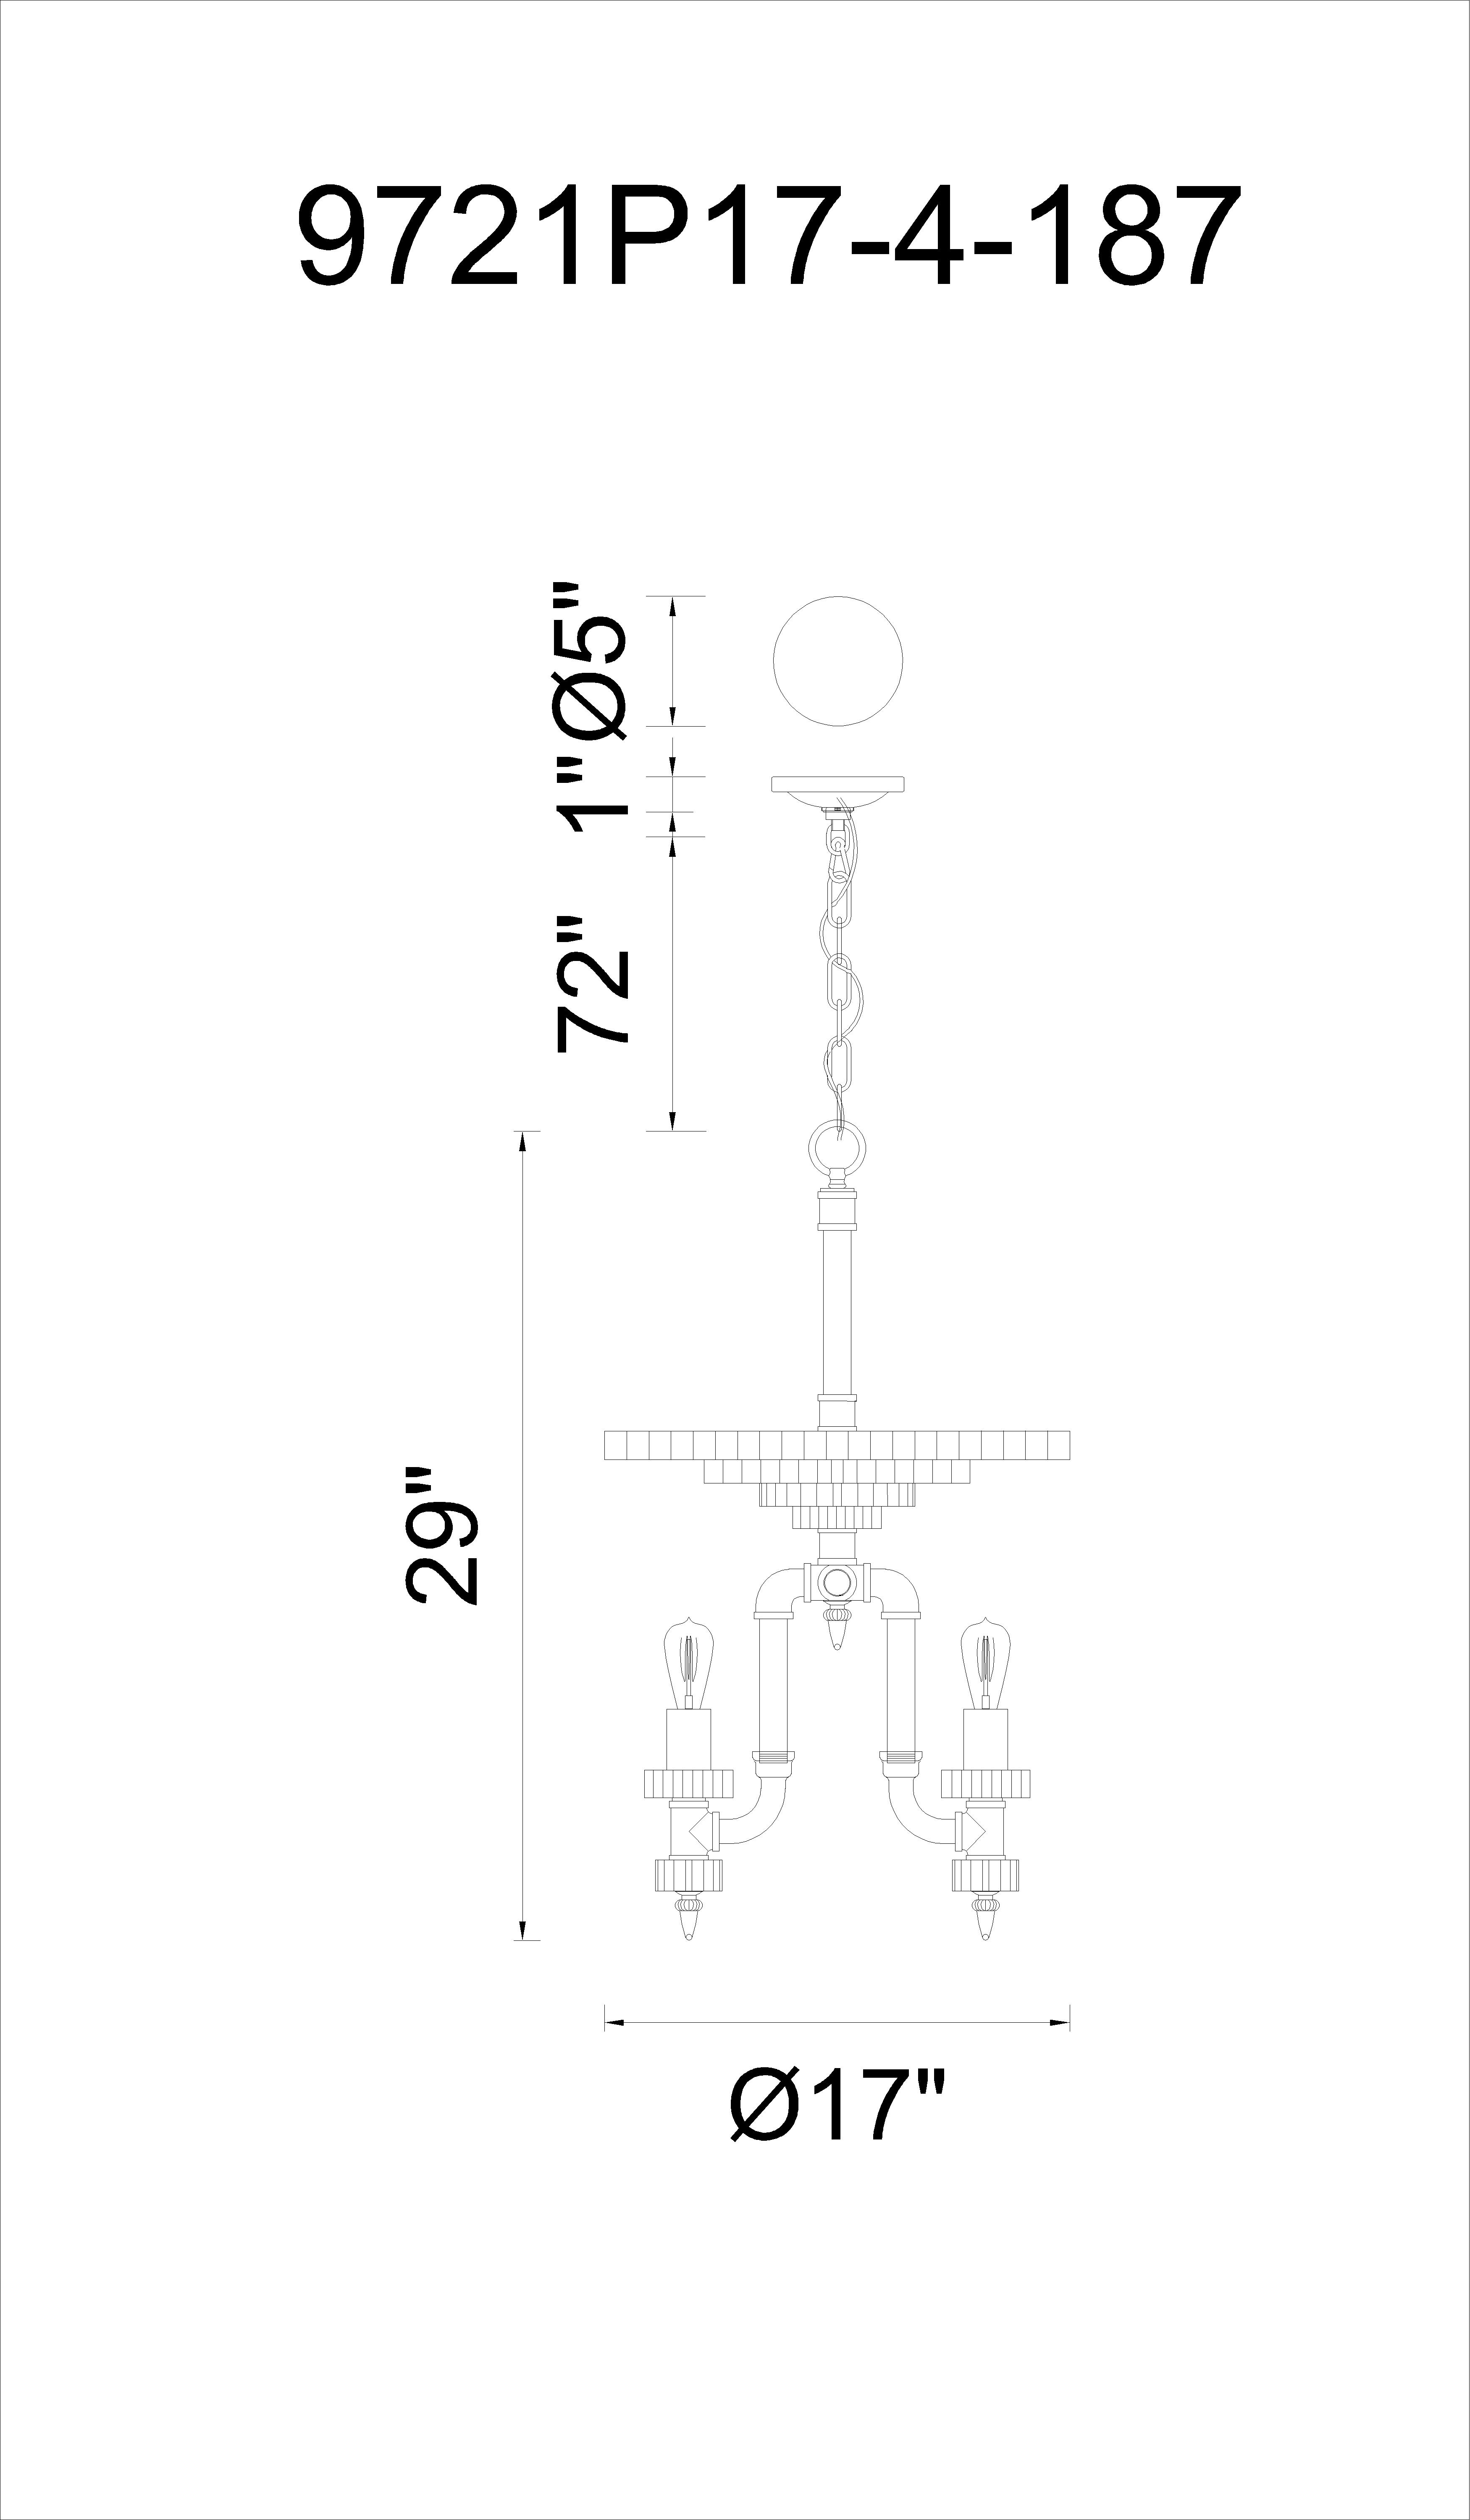 CWI Lighting Soto 4 Light Up Chandelier With Gray Finish Model: 9721P17-4-187 Line Drawing